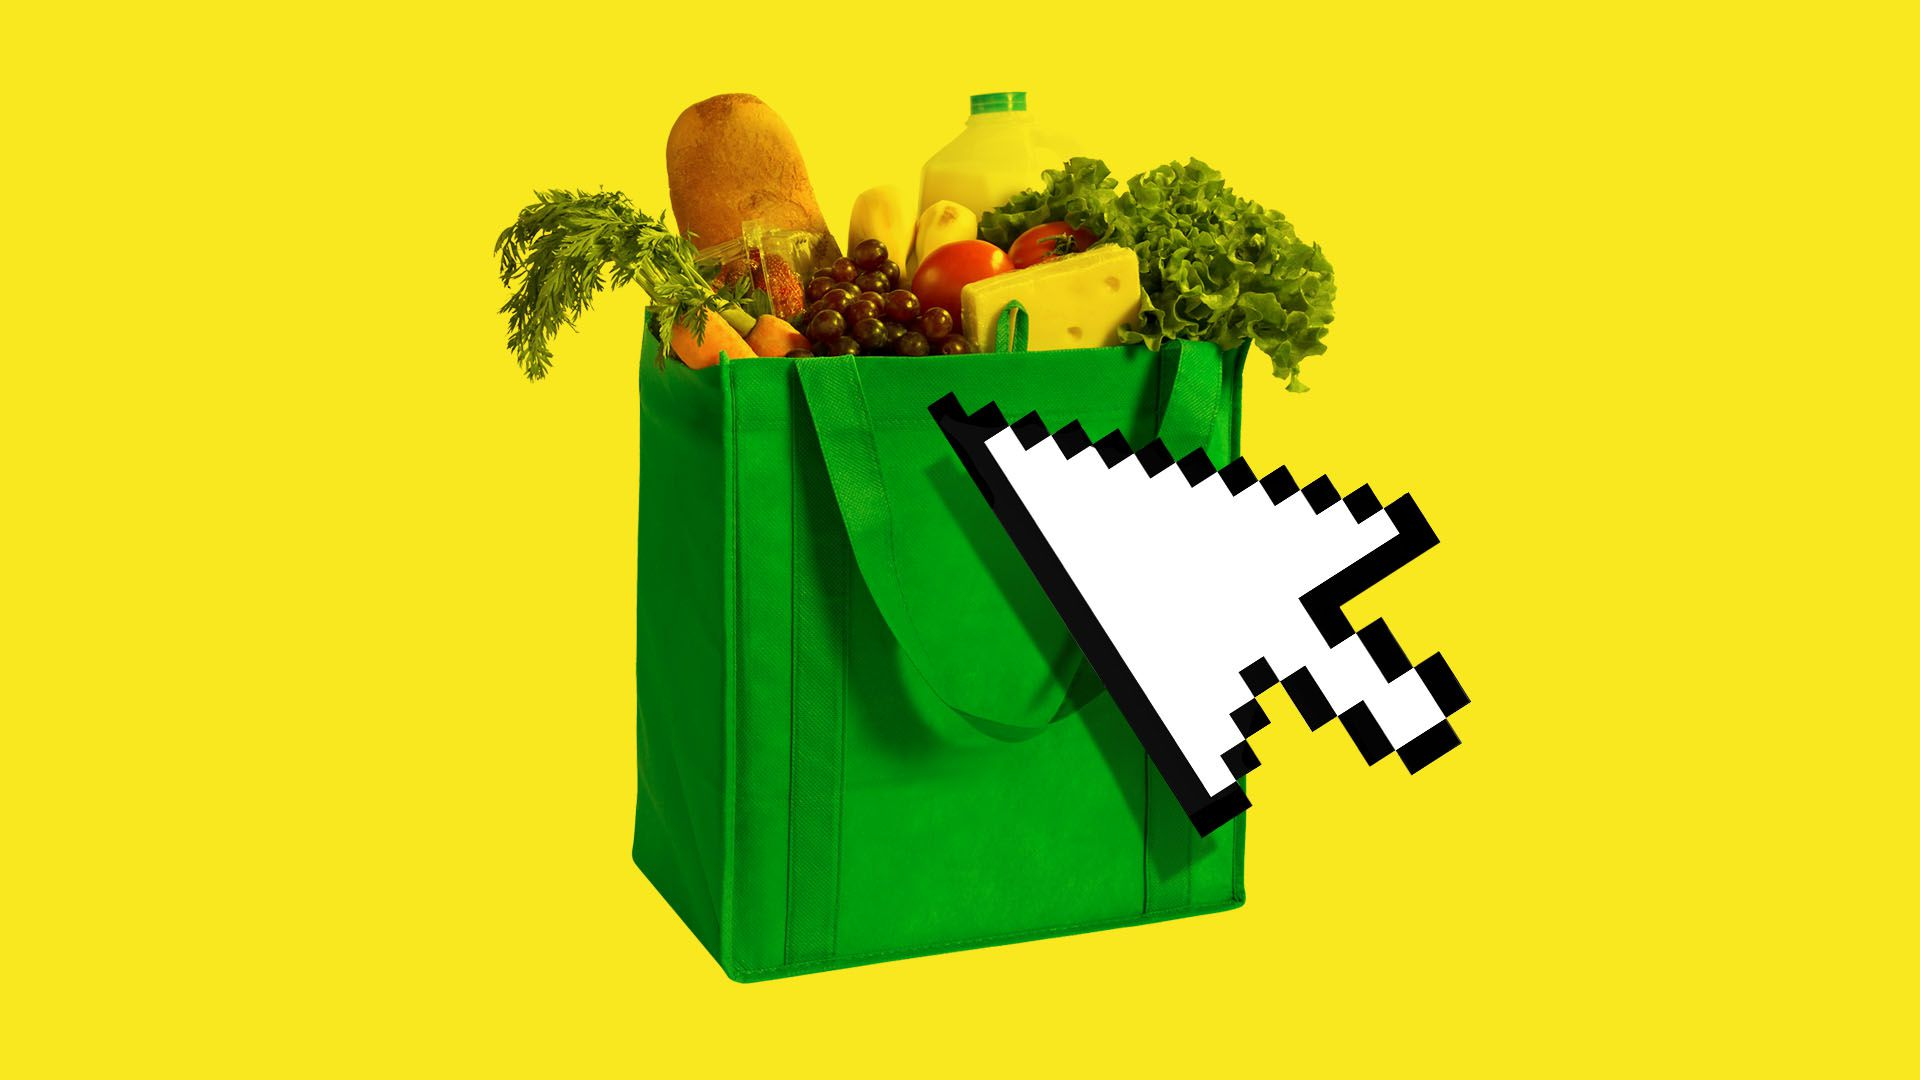 Illustration of a bag full of groceries with a cursor over it